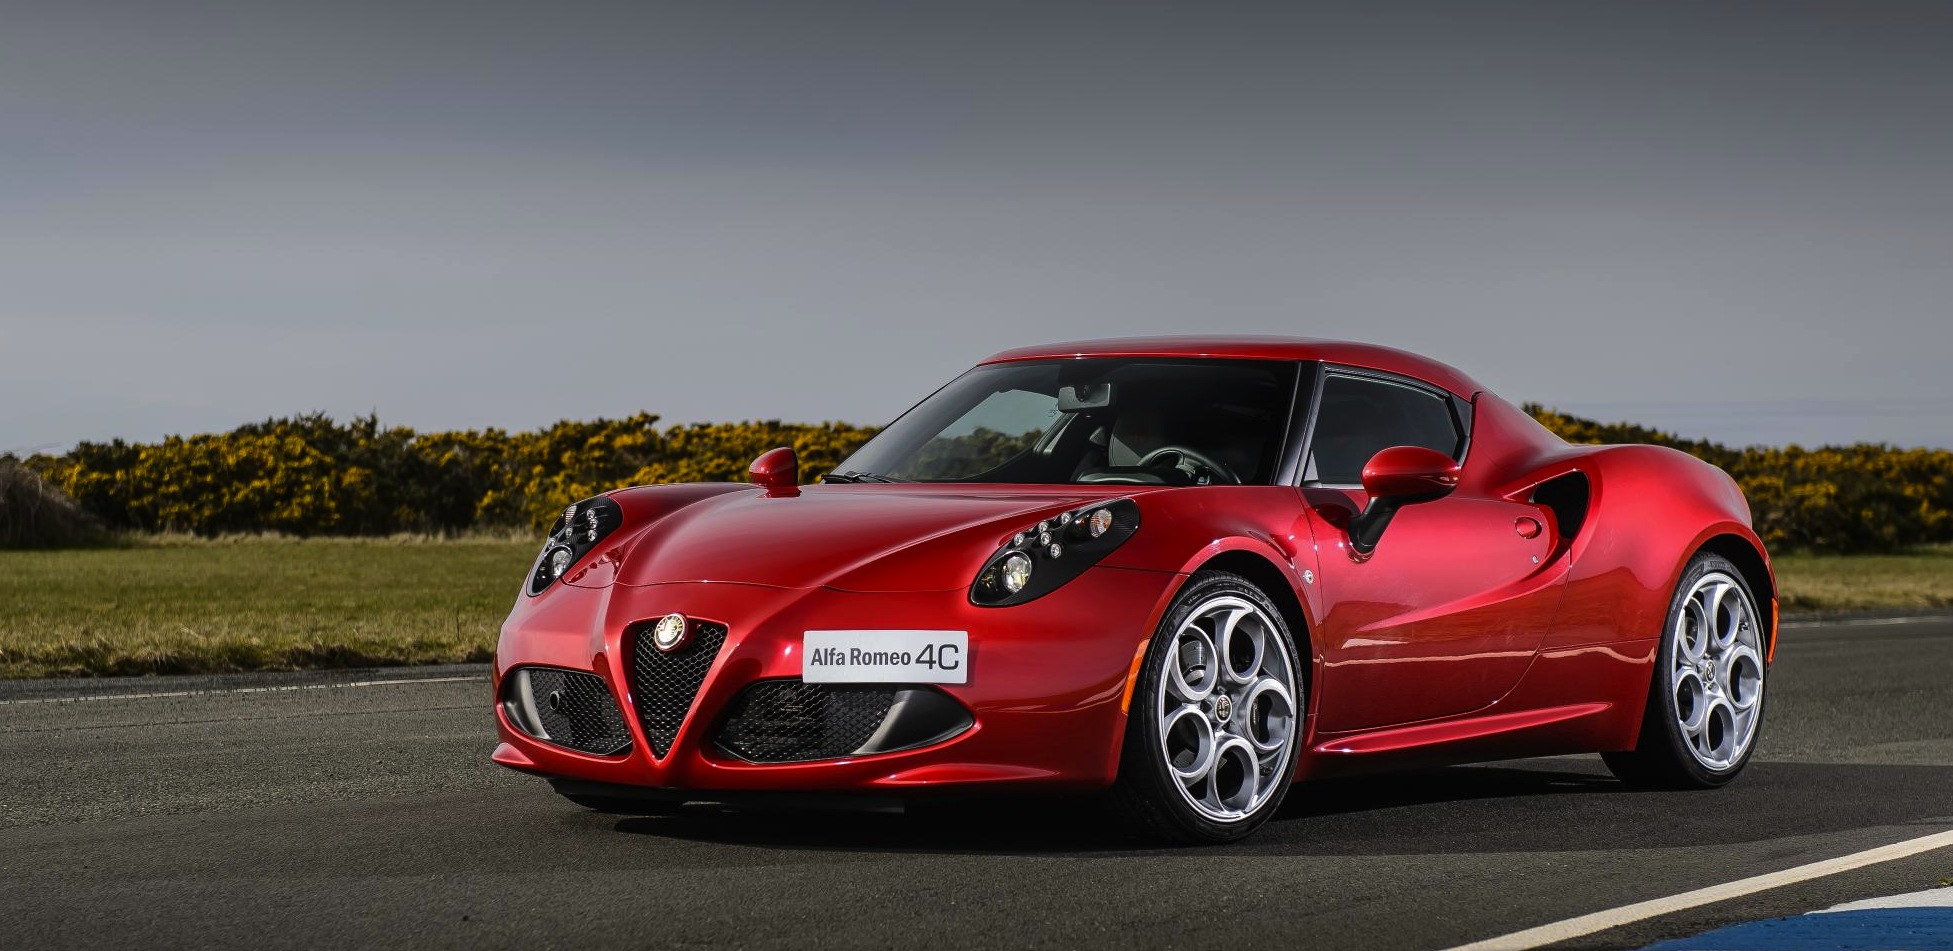 Good News: Alfa Romeo's Future Will Be A Festival Of 4WD & RWD